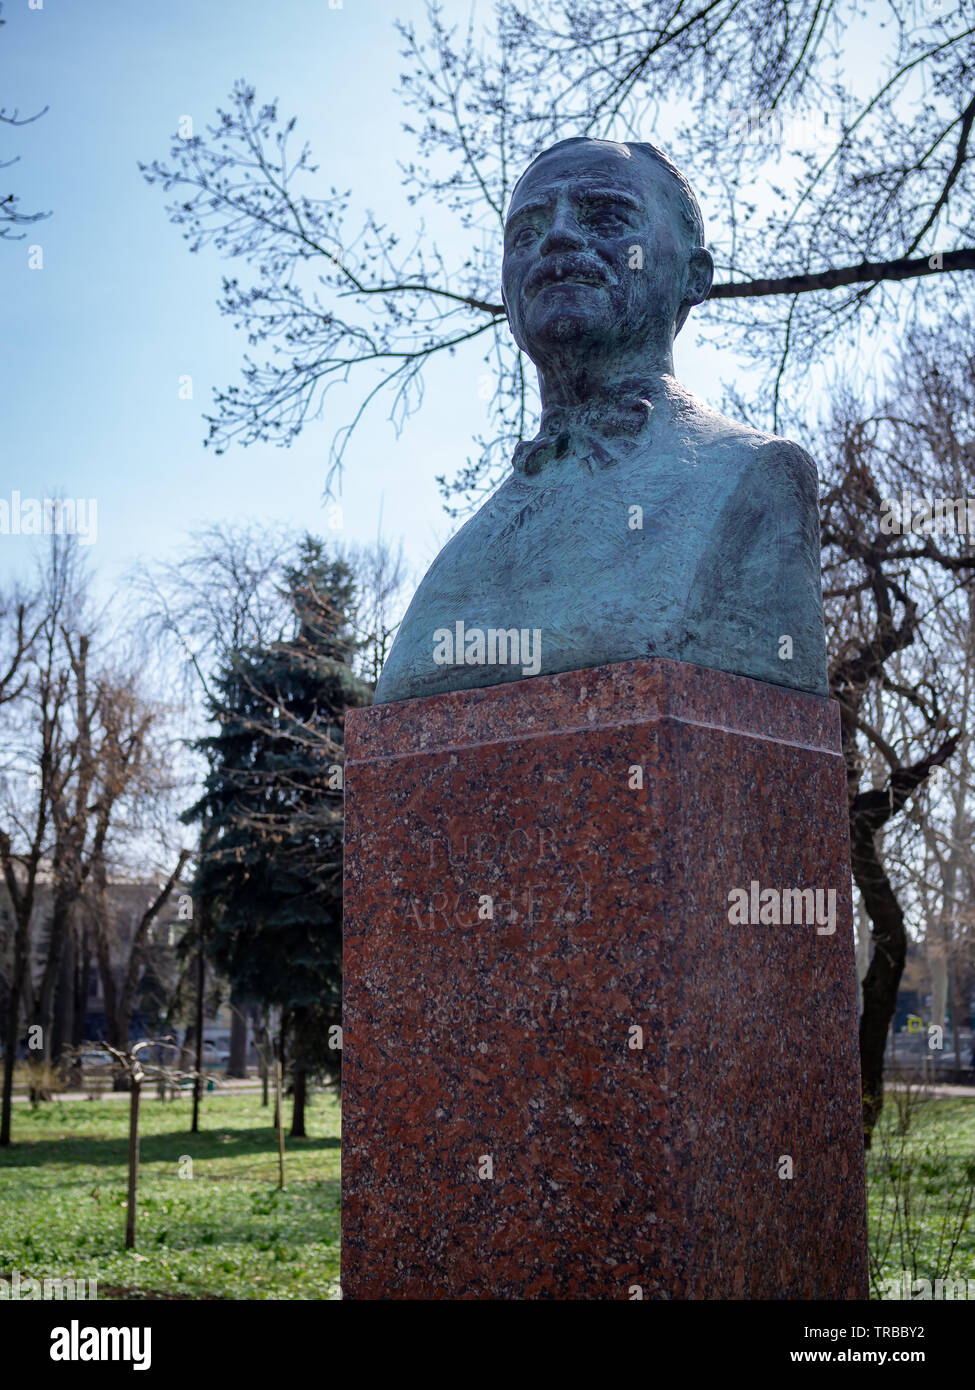 CHISINAU, MOLDOVA-MARCH 21, 2019: Tudor Arghezi bust by Dimitrie Verdeanu in the Alley of Classics - Stock Image